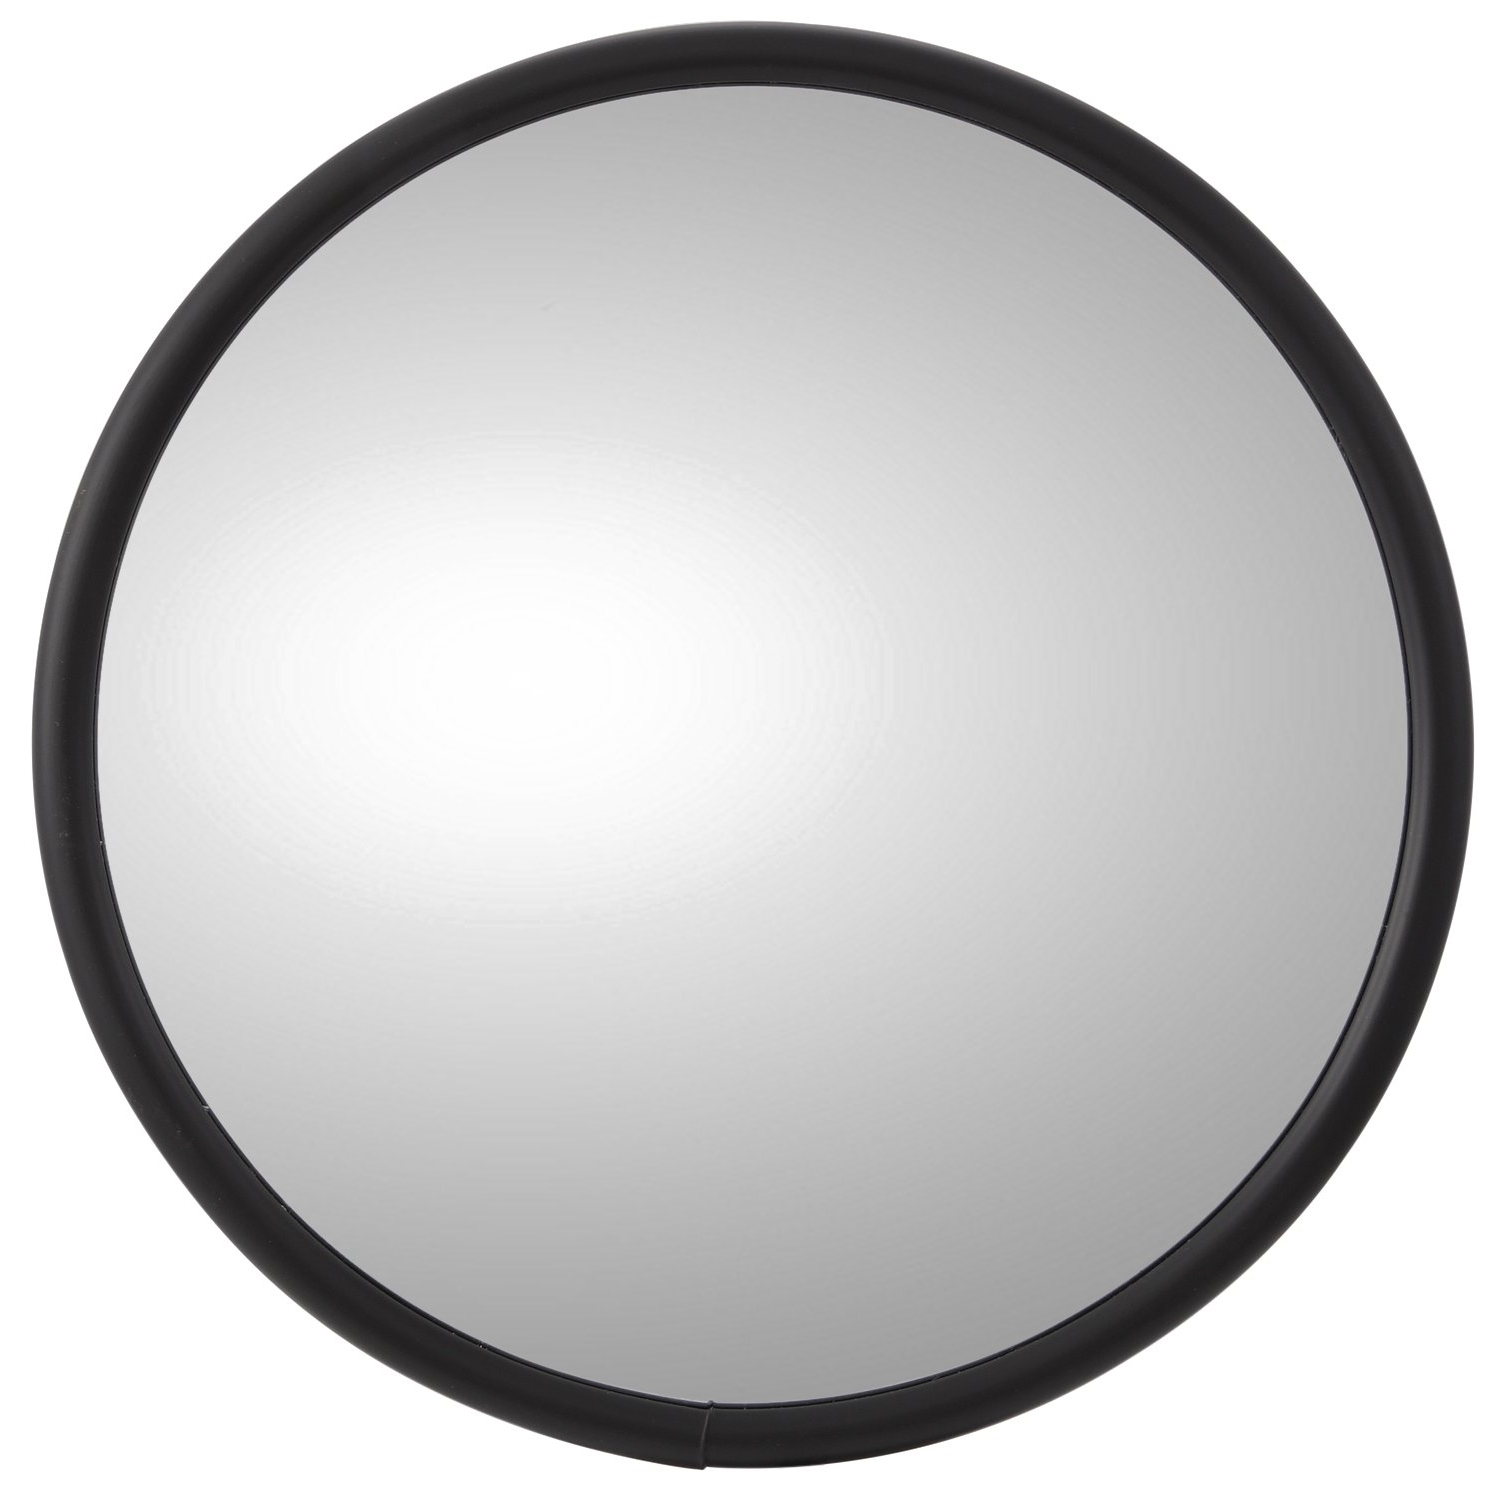 12 In White Steel Convex Mirror Round Universal Mount Truck Lite Throughout White Convex Mirror (View 15 of 15)